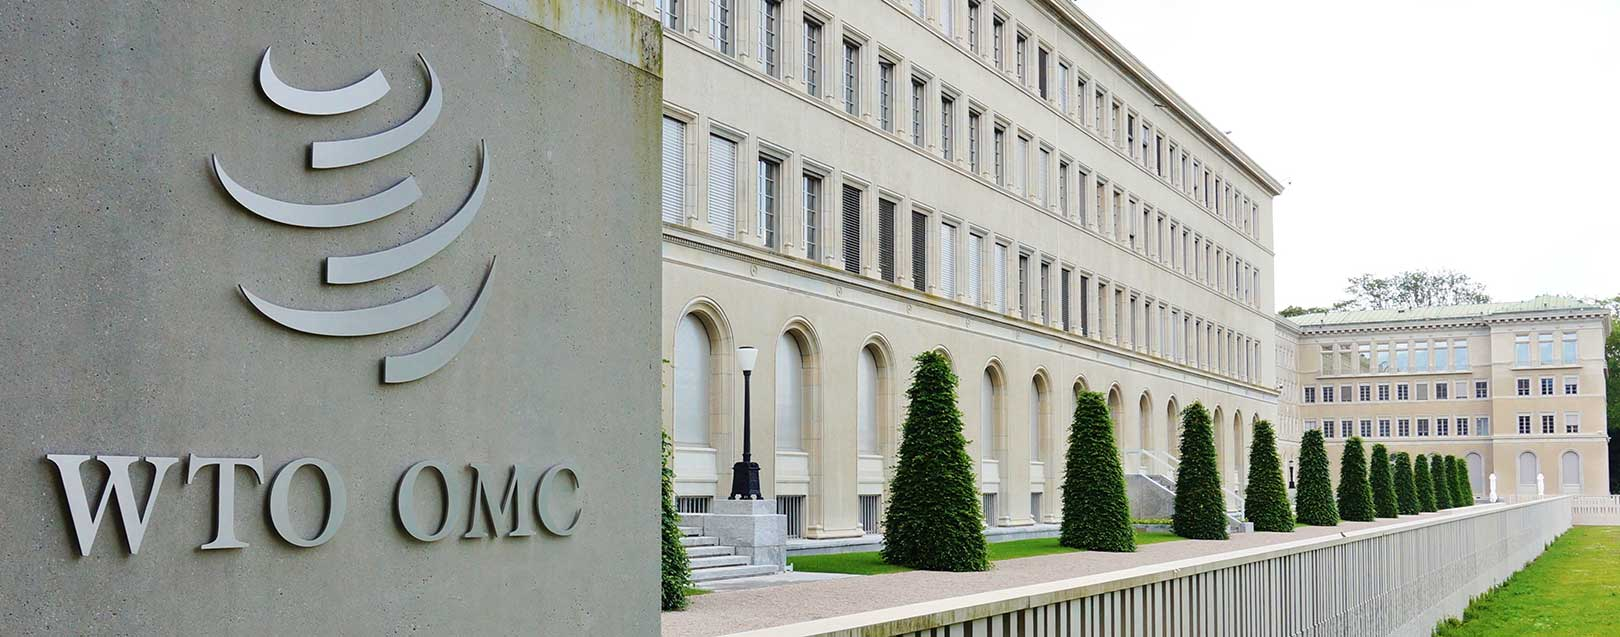 WTO mini-ministerial: Trade ministers to meet in Oslo in Oct